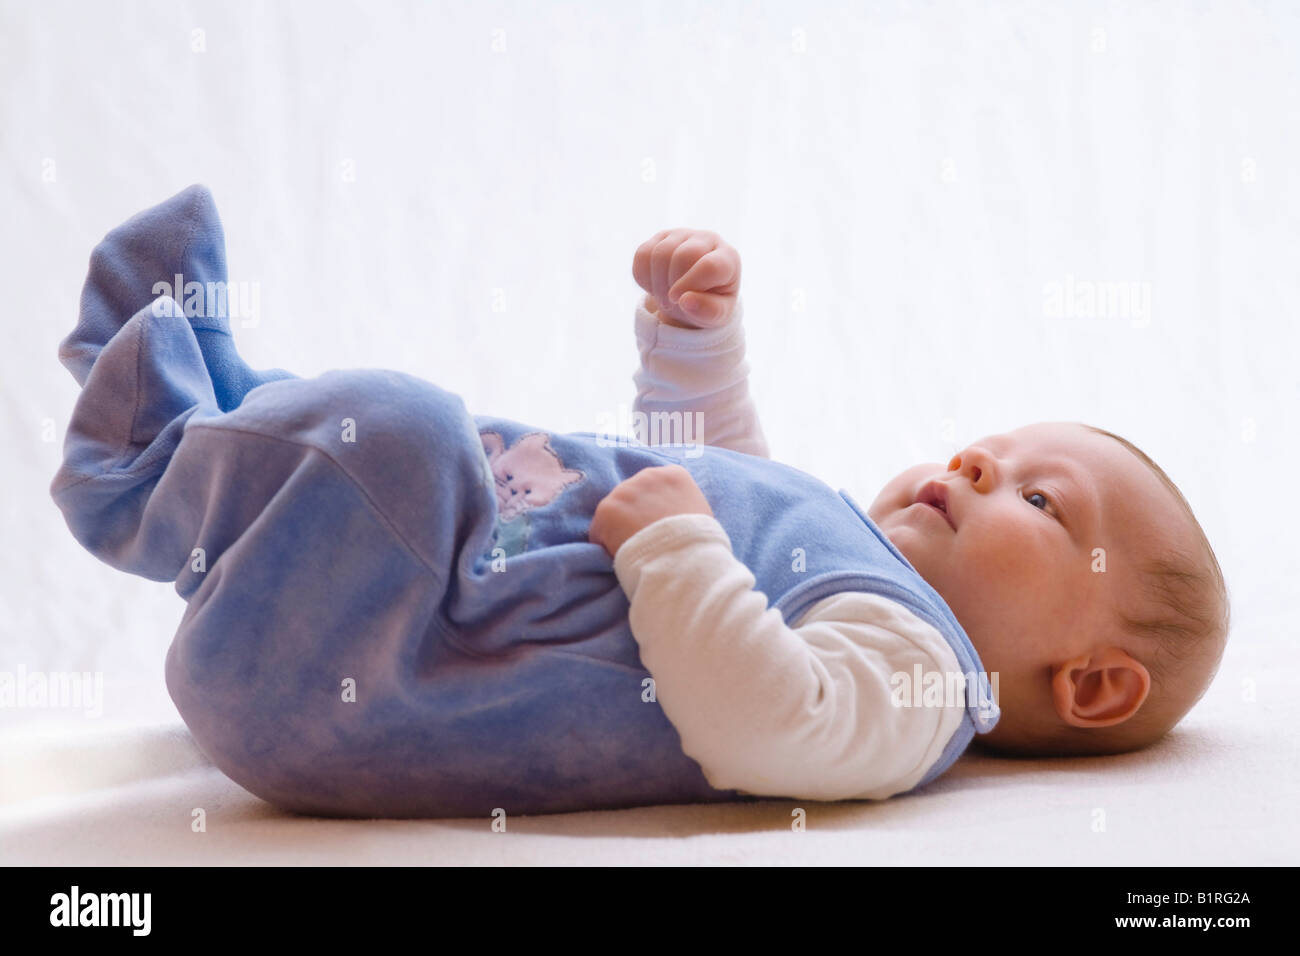 3-month-old baby, stretching arms into the air - Stock Image